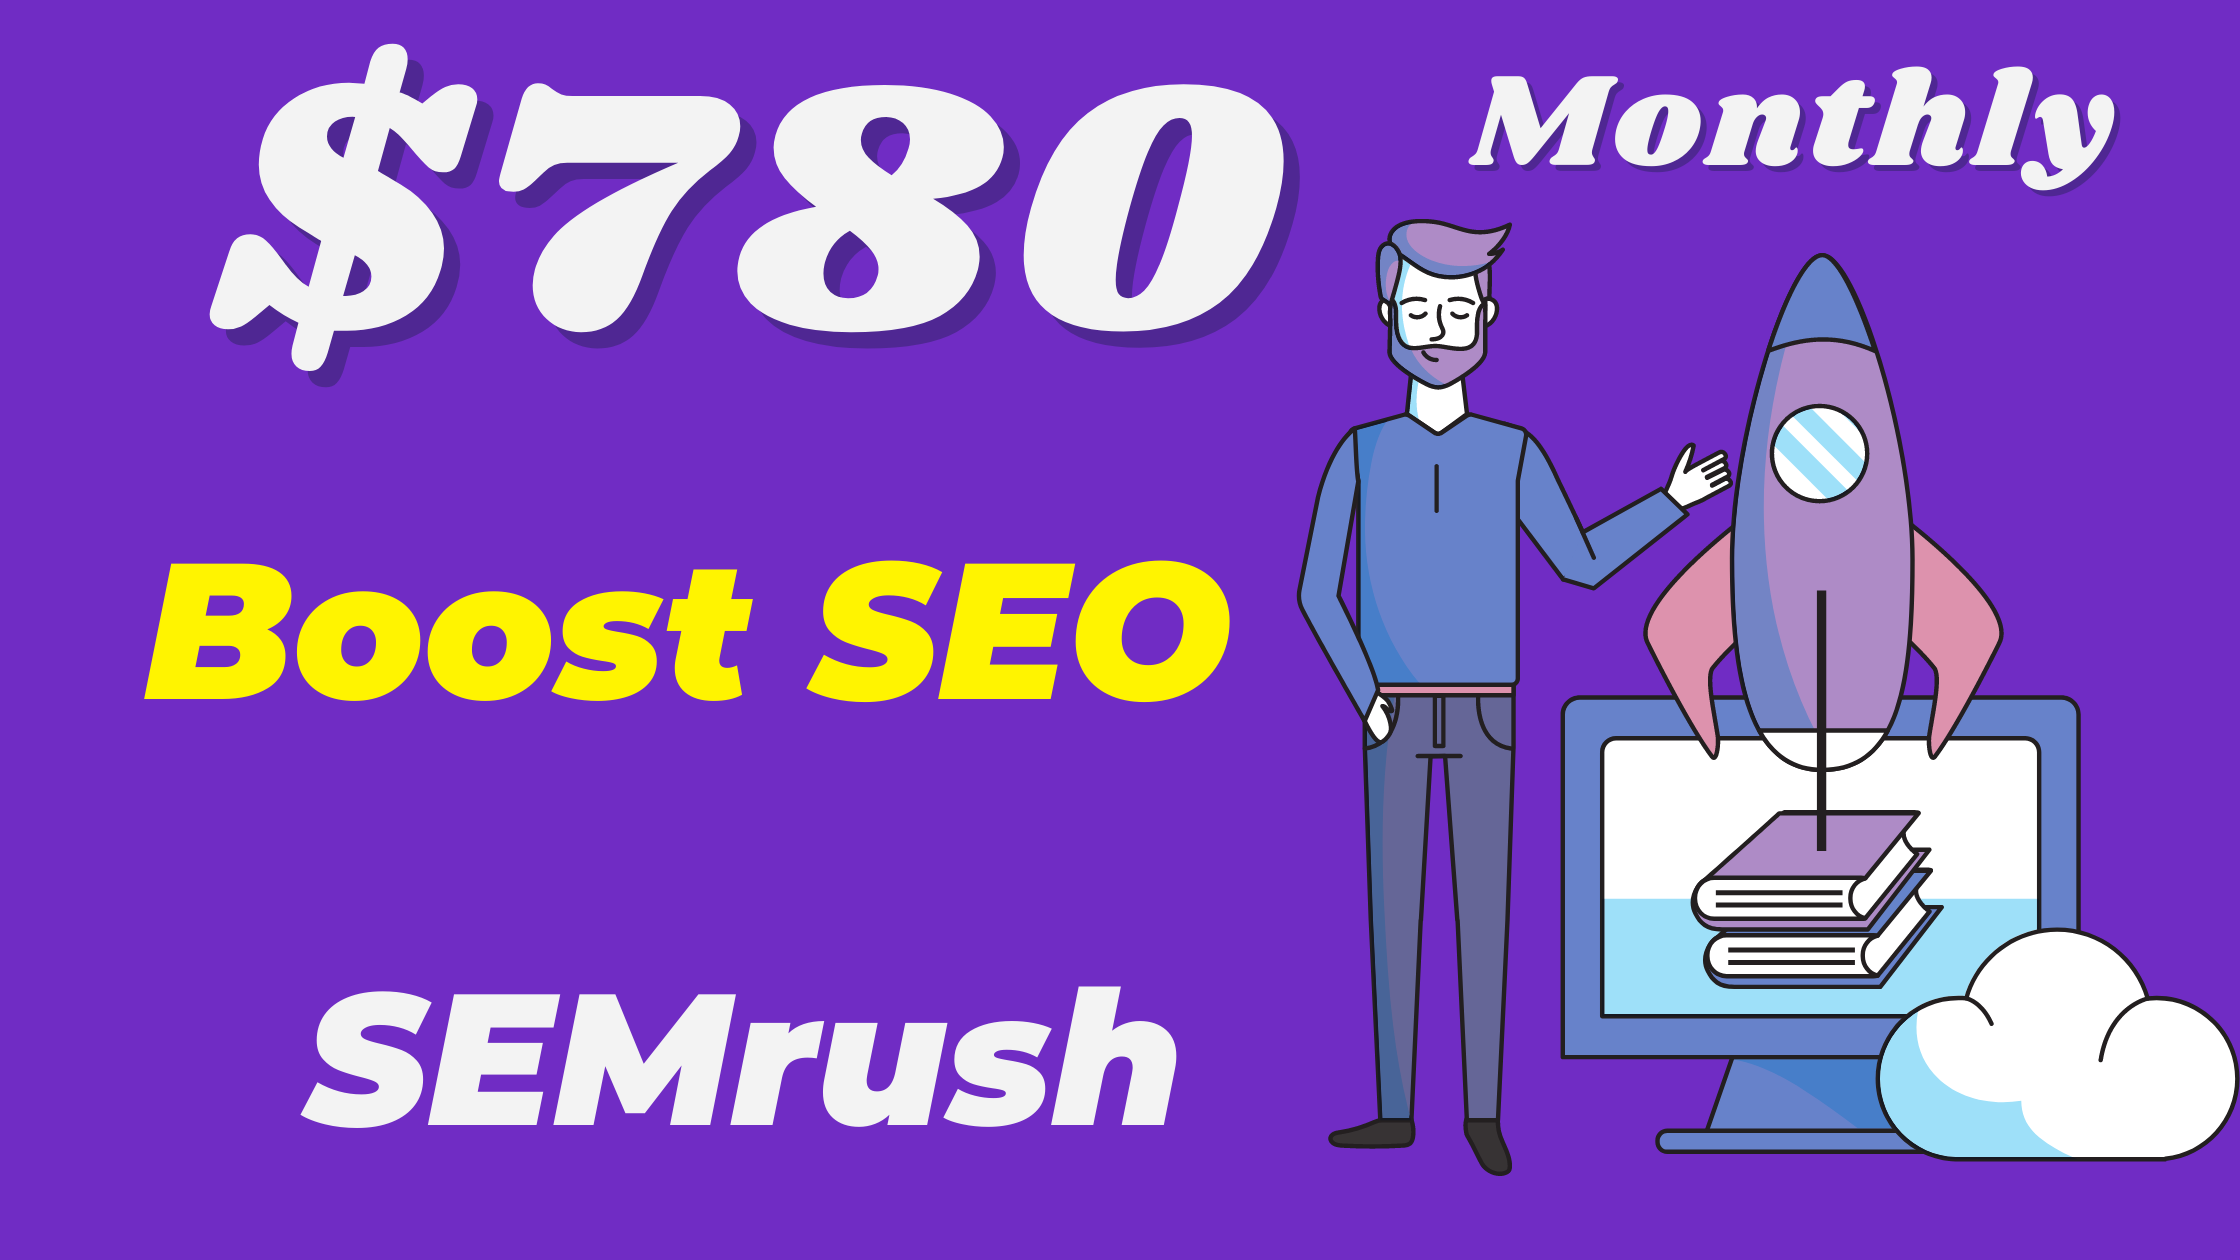 What is SEMrush and How to use SEMrush for SEO - (No#1 SEO Tool)